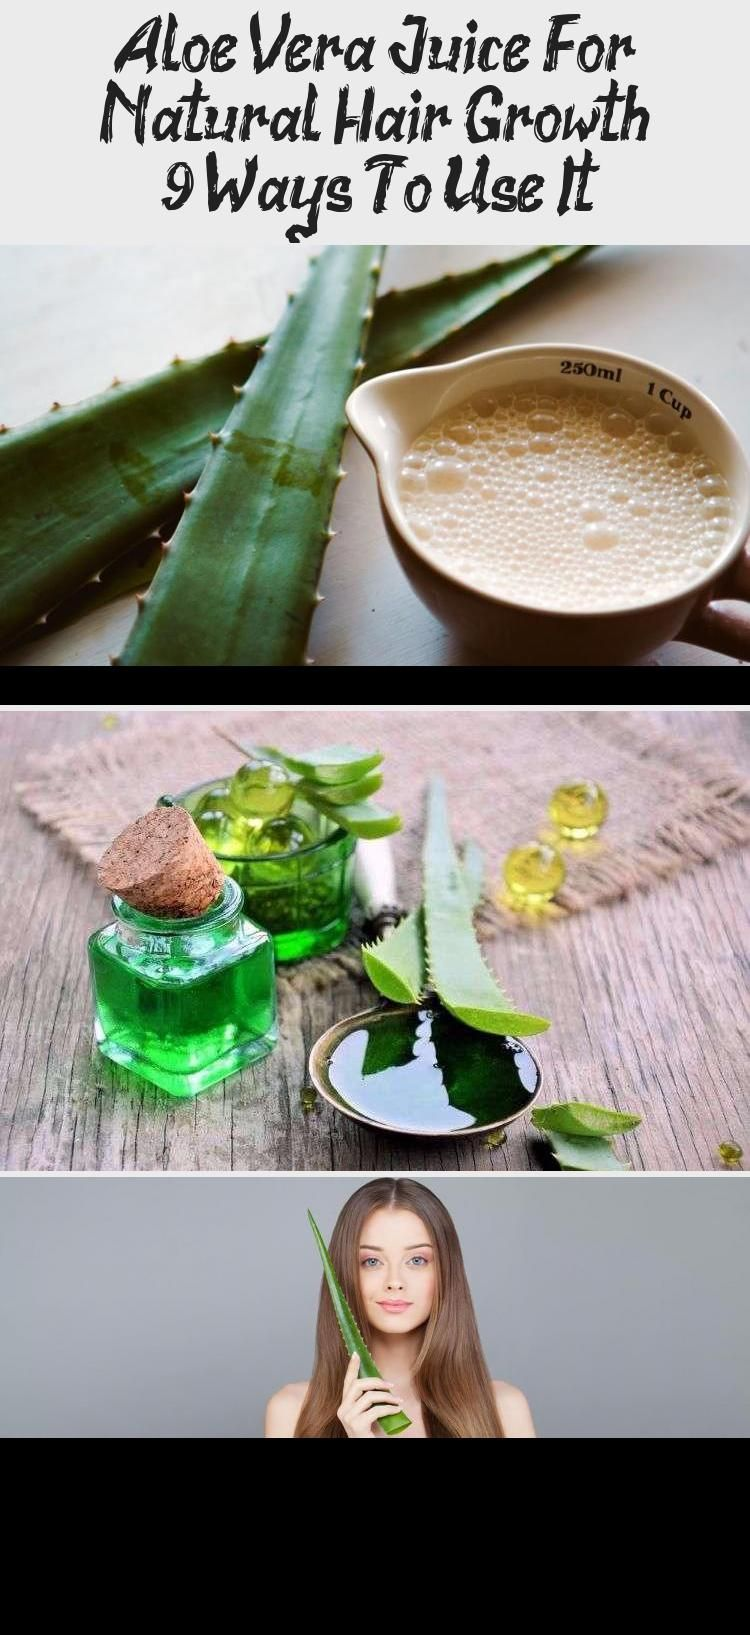 Aloe Vera Juice for Natural Hair Growth #hairgrowthSmoothie #hairgrowthThicker #...#aloe #growth #hair #hairgrowthsmoothie #hairgrowththicker #juice #natural #vera #fasterhairgrowth